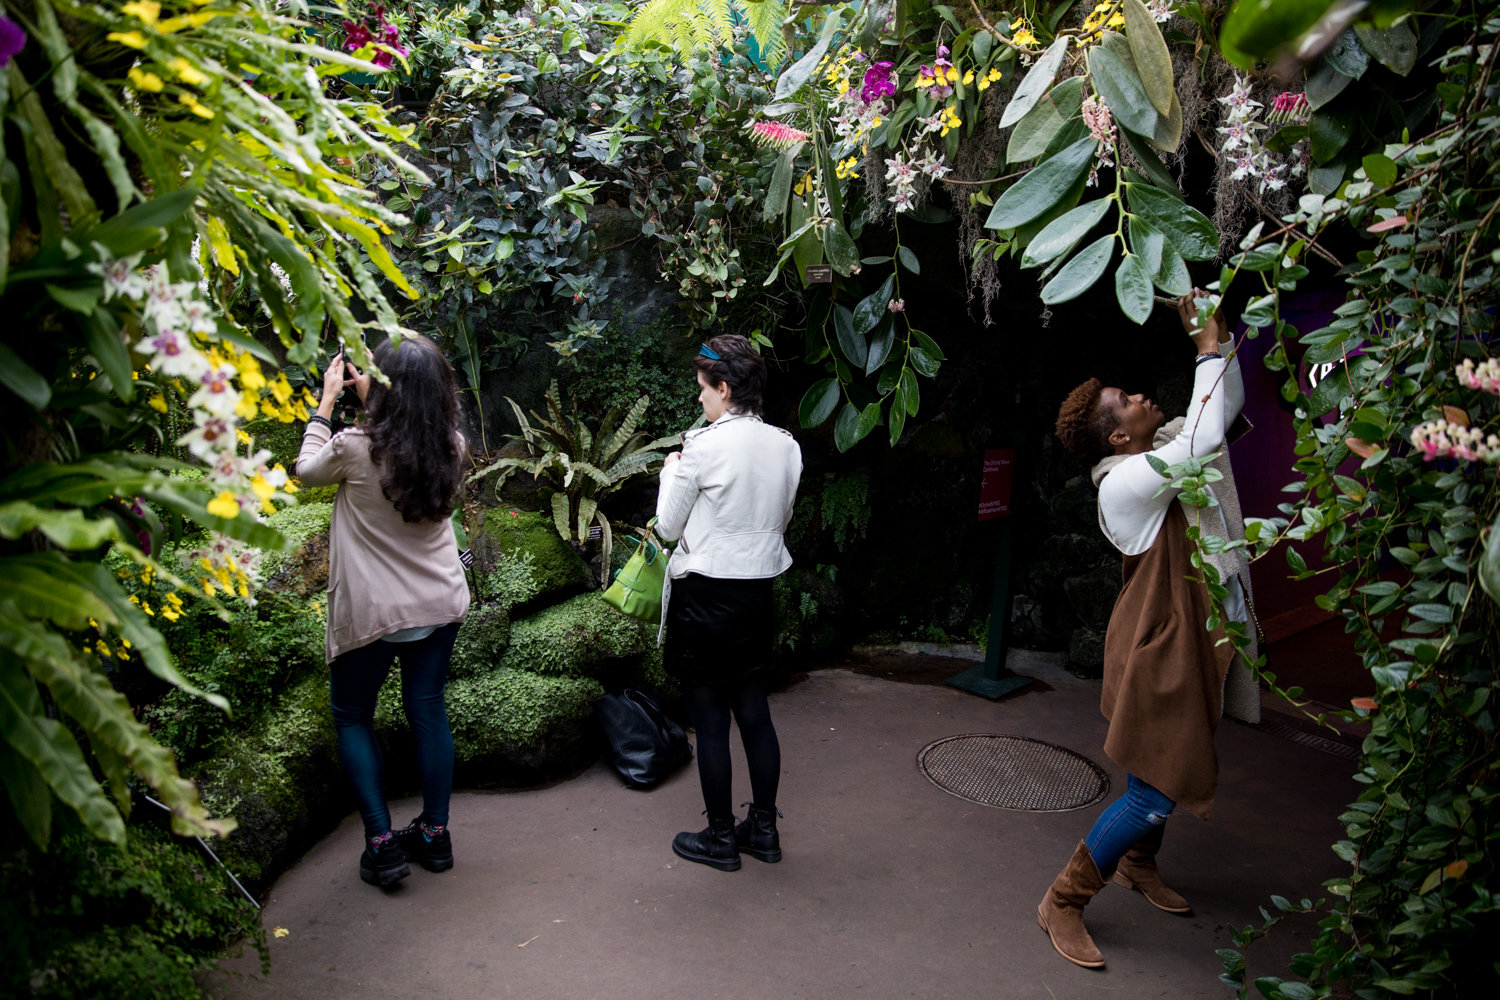 Visitors take pictures of the orchid displays after passing through the rainbow tunnel.